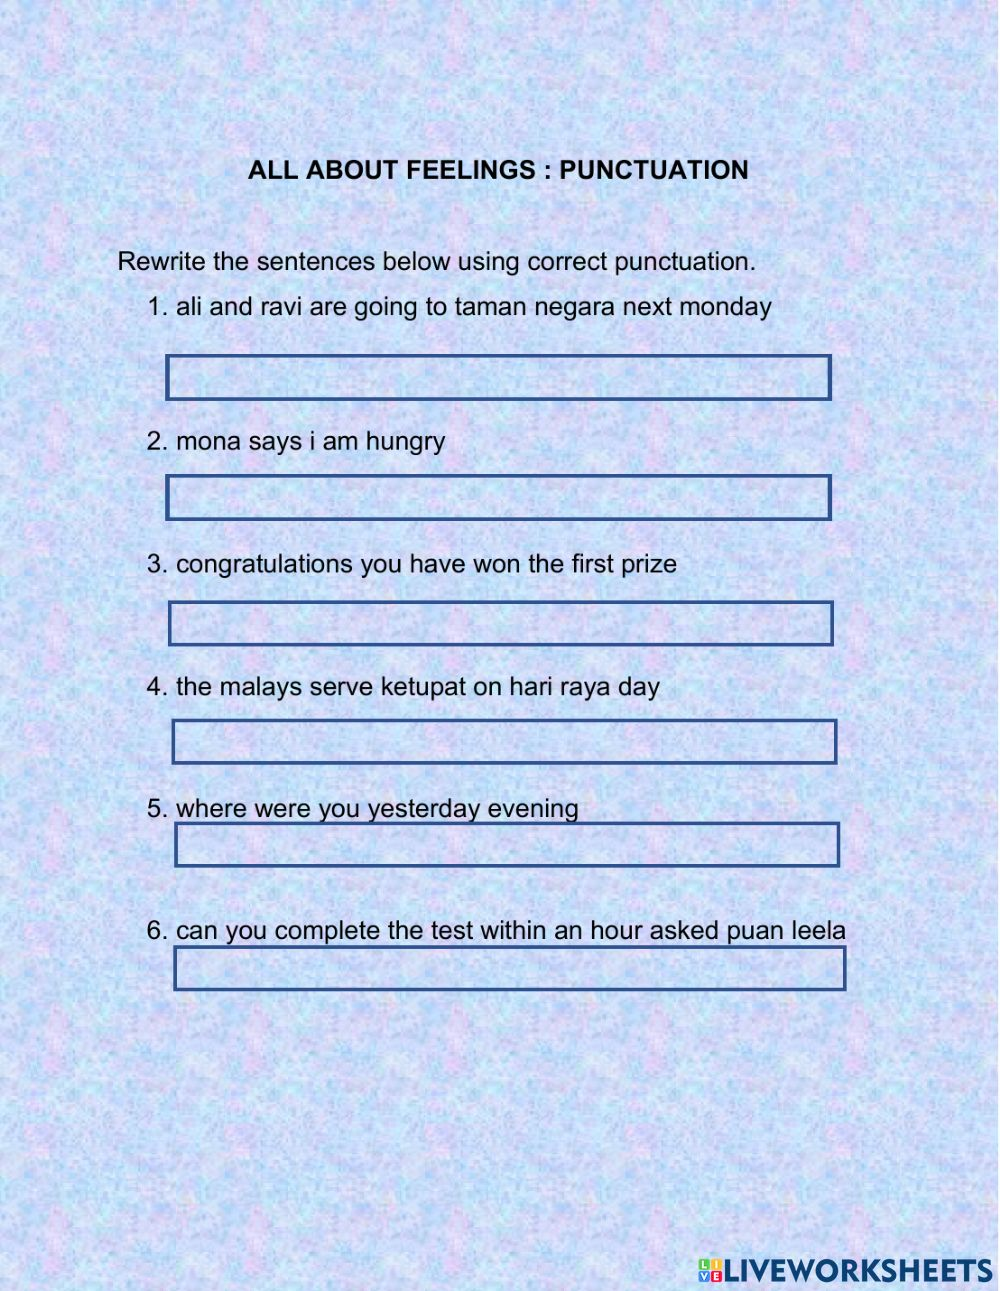 medium resolution of UNIT 1: ALL ABOUT FEELINGS(PUNCTUATION) worksheet